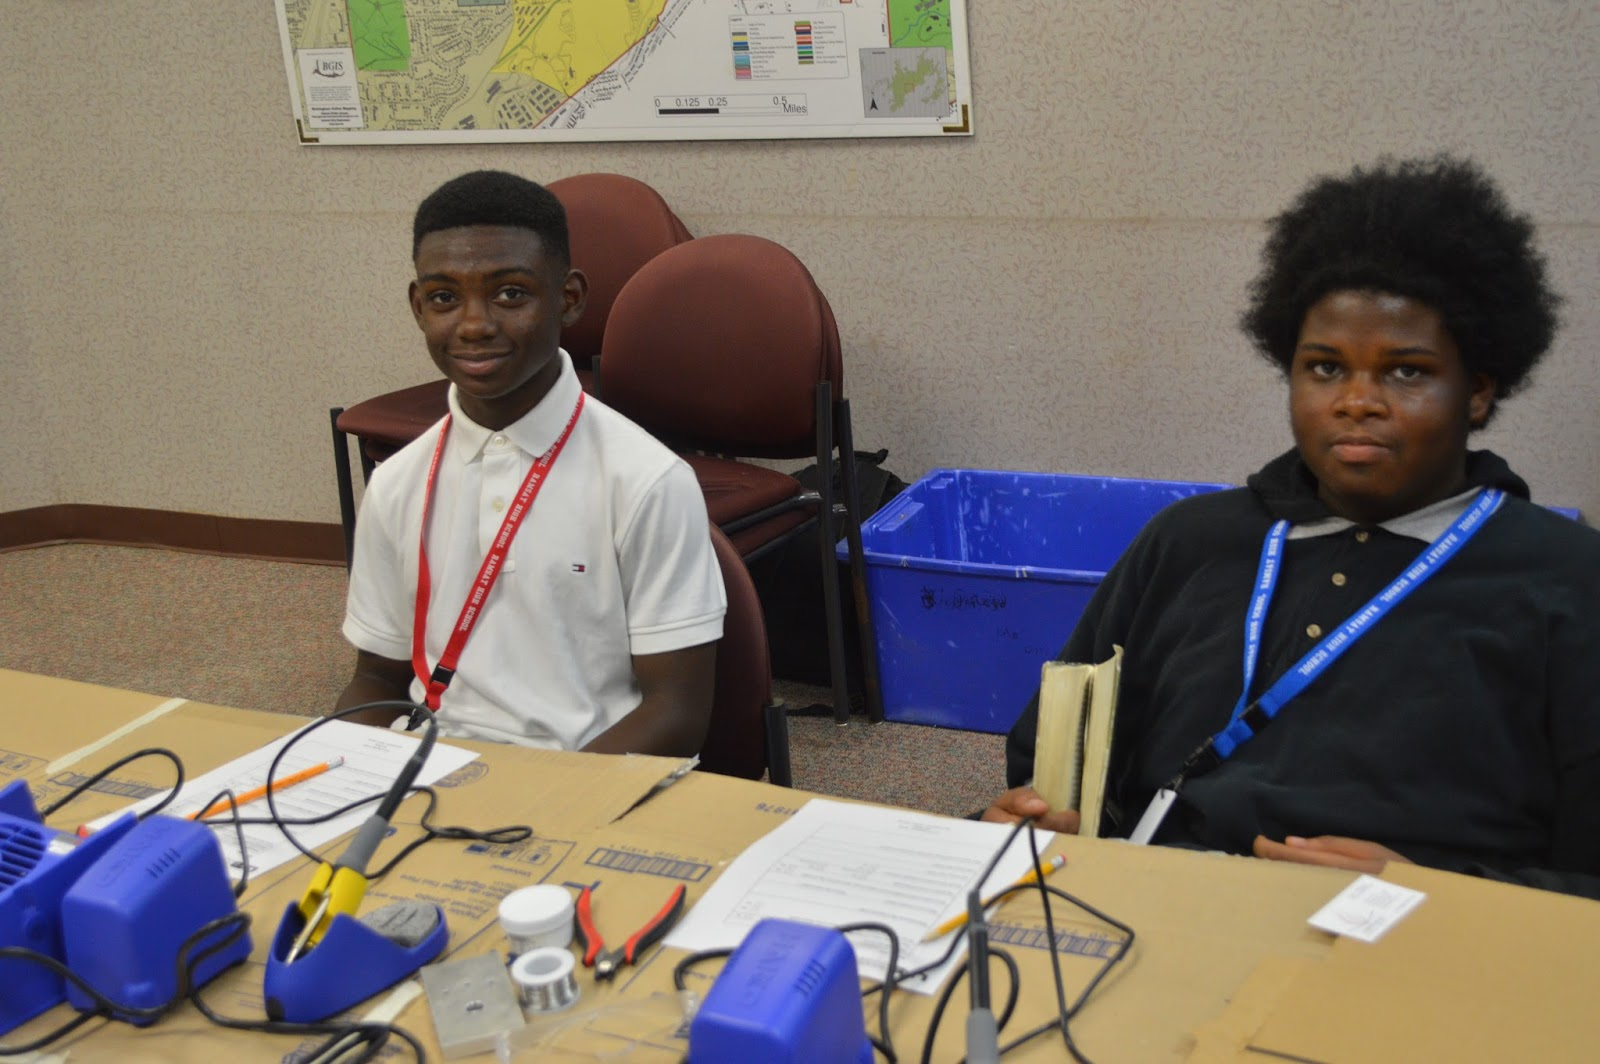 photo of two students at STEM program